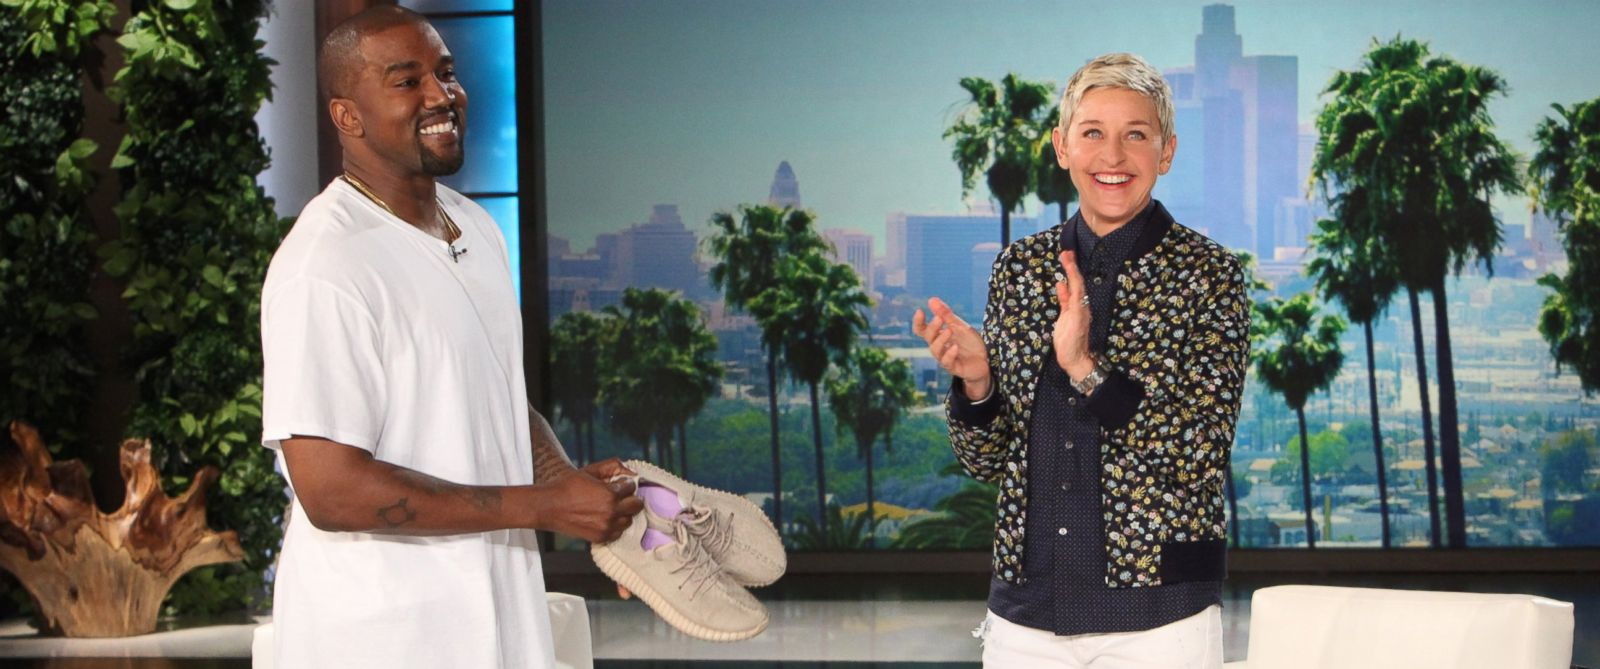 Kanye West on 'Ellen': What We Learned From His Rant - ABC ...